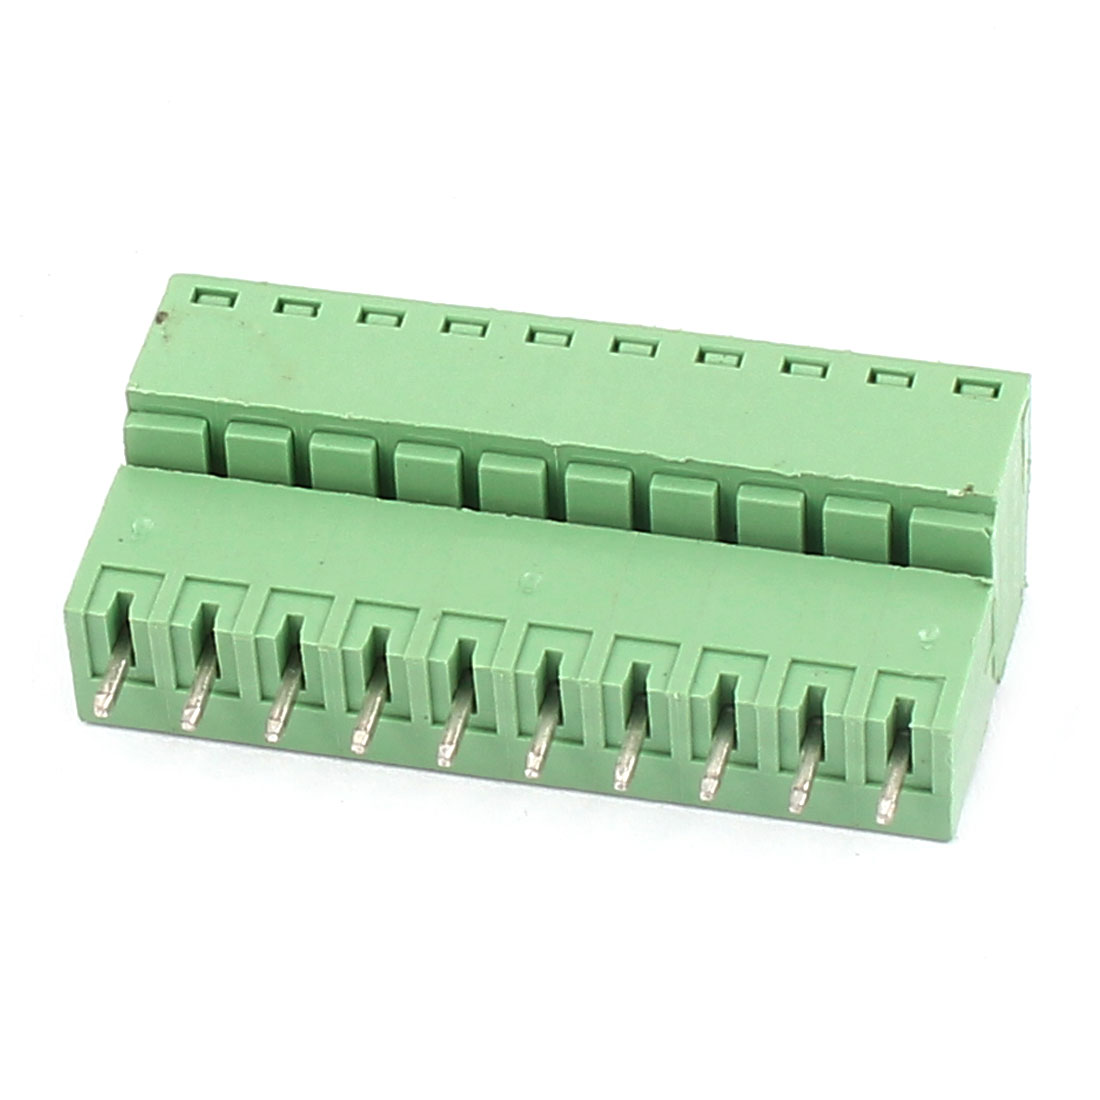 250V 6A 10-Pin 3.74mm Spacing PCB Mount Terminal Block Connector